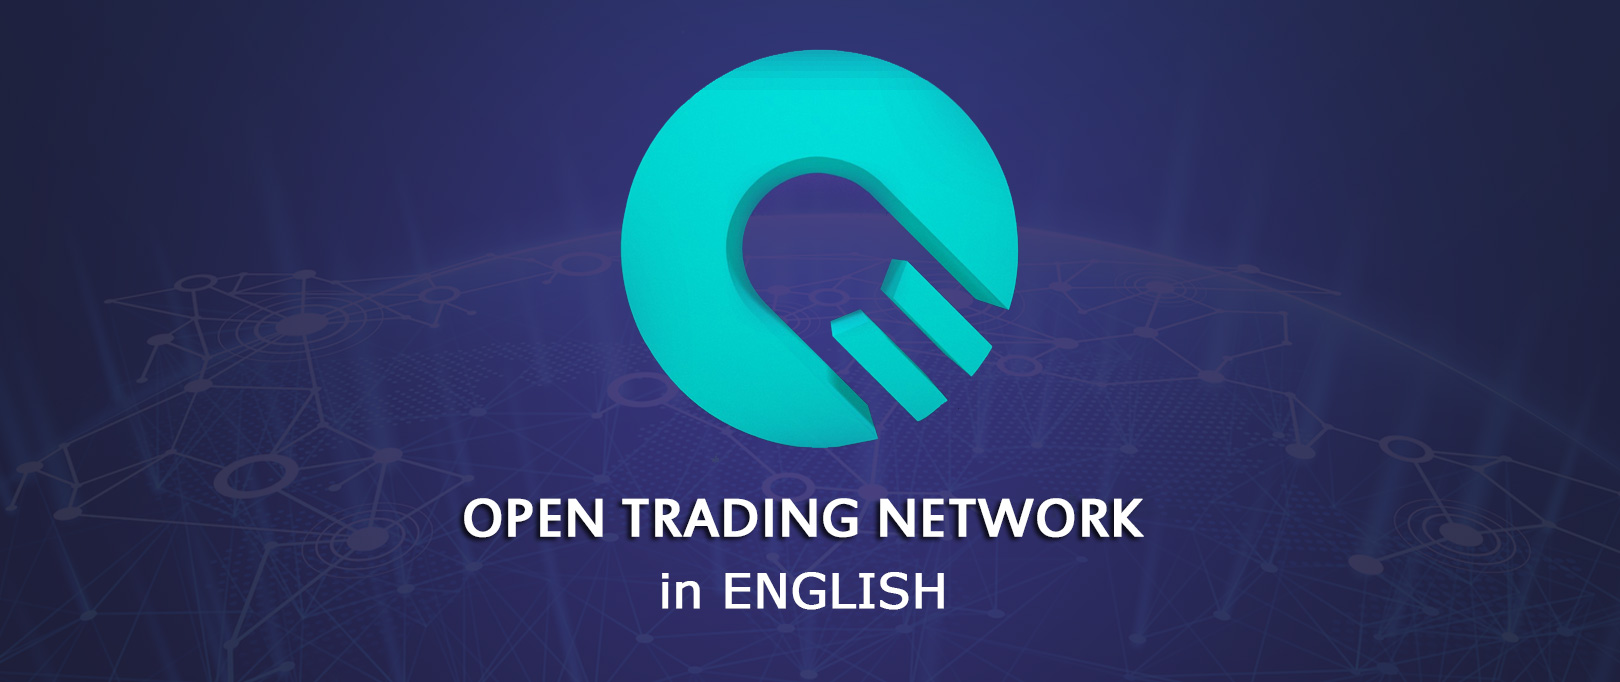 get free otn token from IQ Options in English by prathilaba